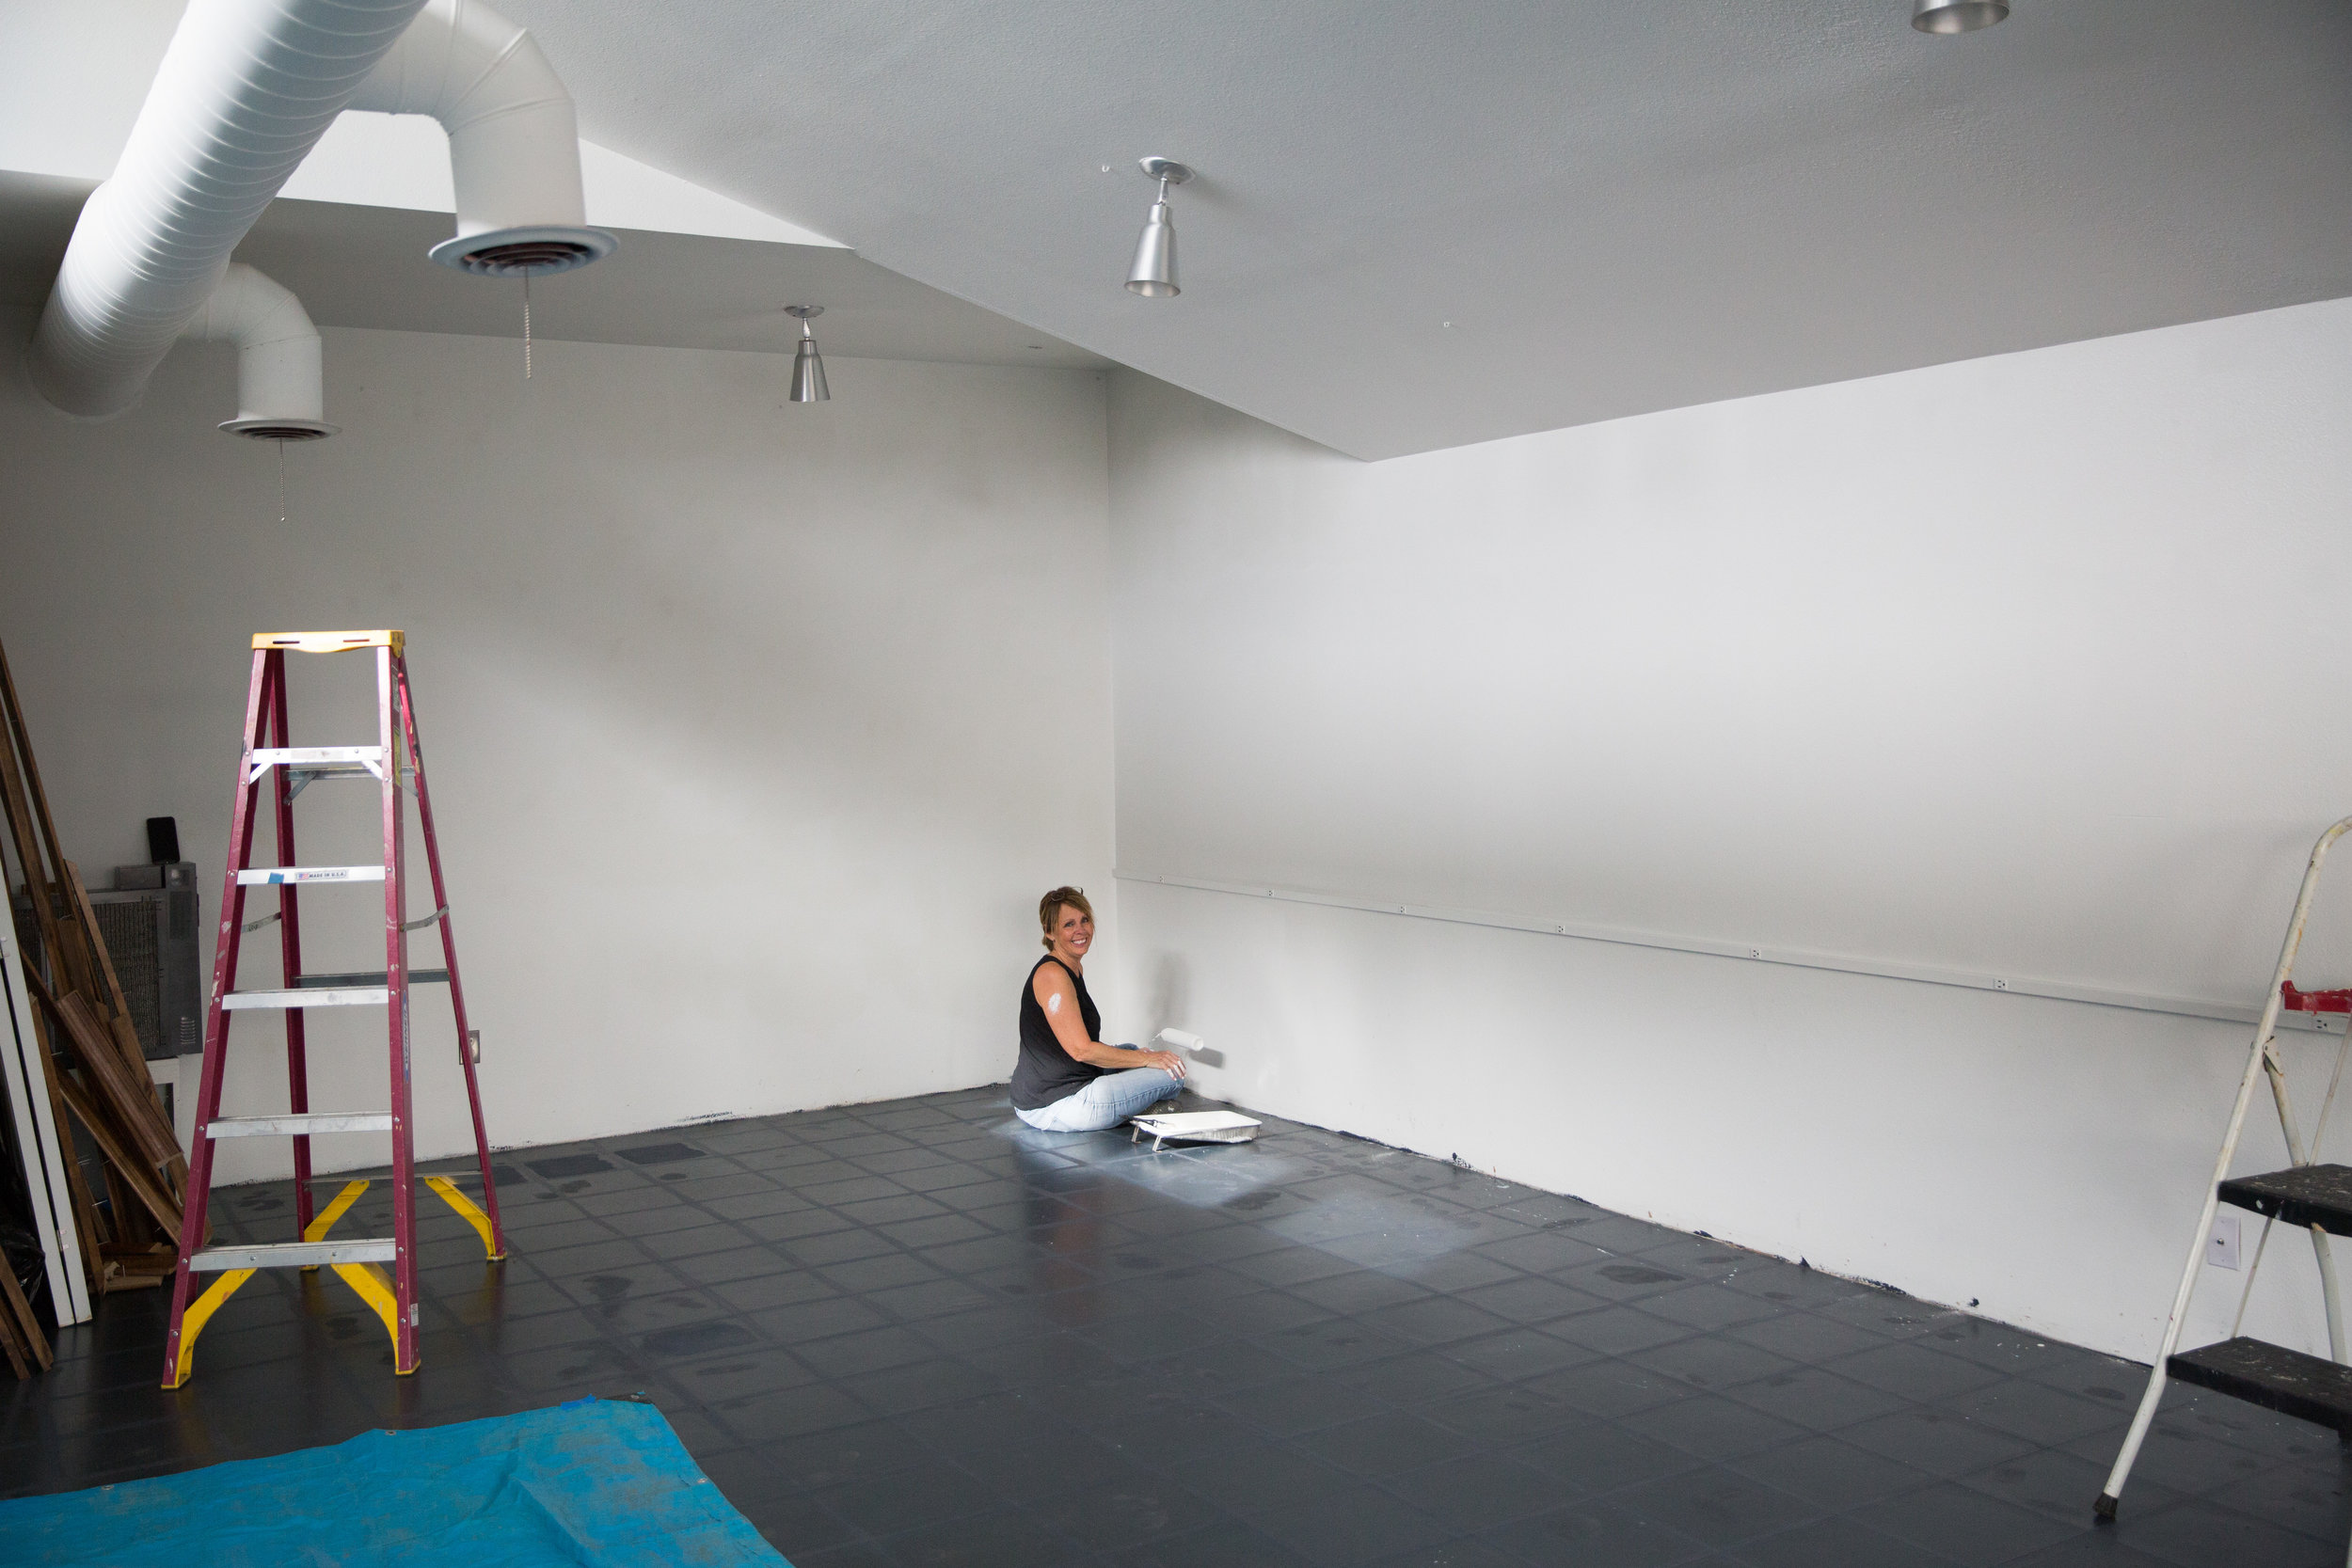 studio-before-and-after-fortitude-and-finn-15.jpg